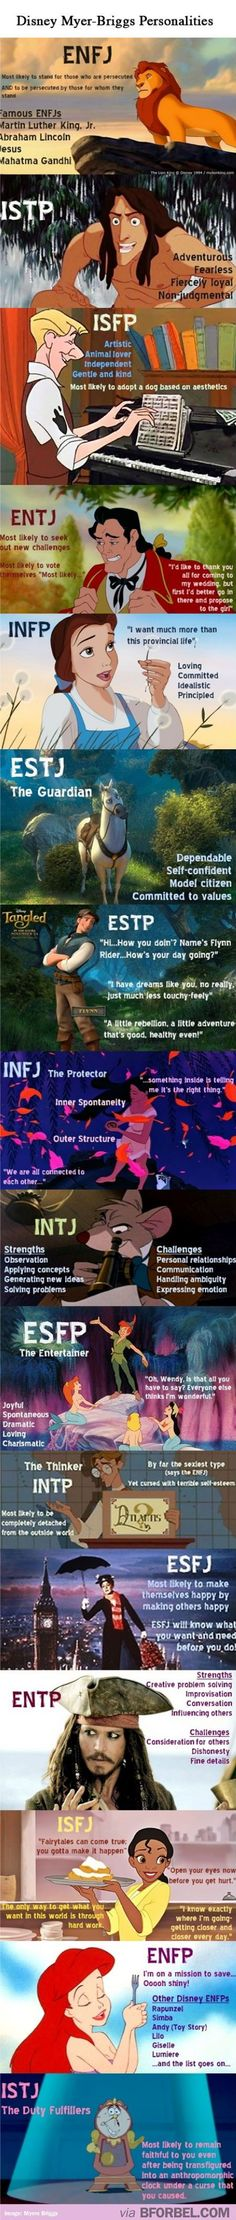 ENFP Disney Character Myers Briggs Personalities.